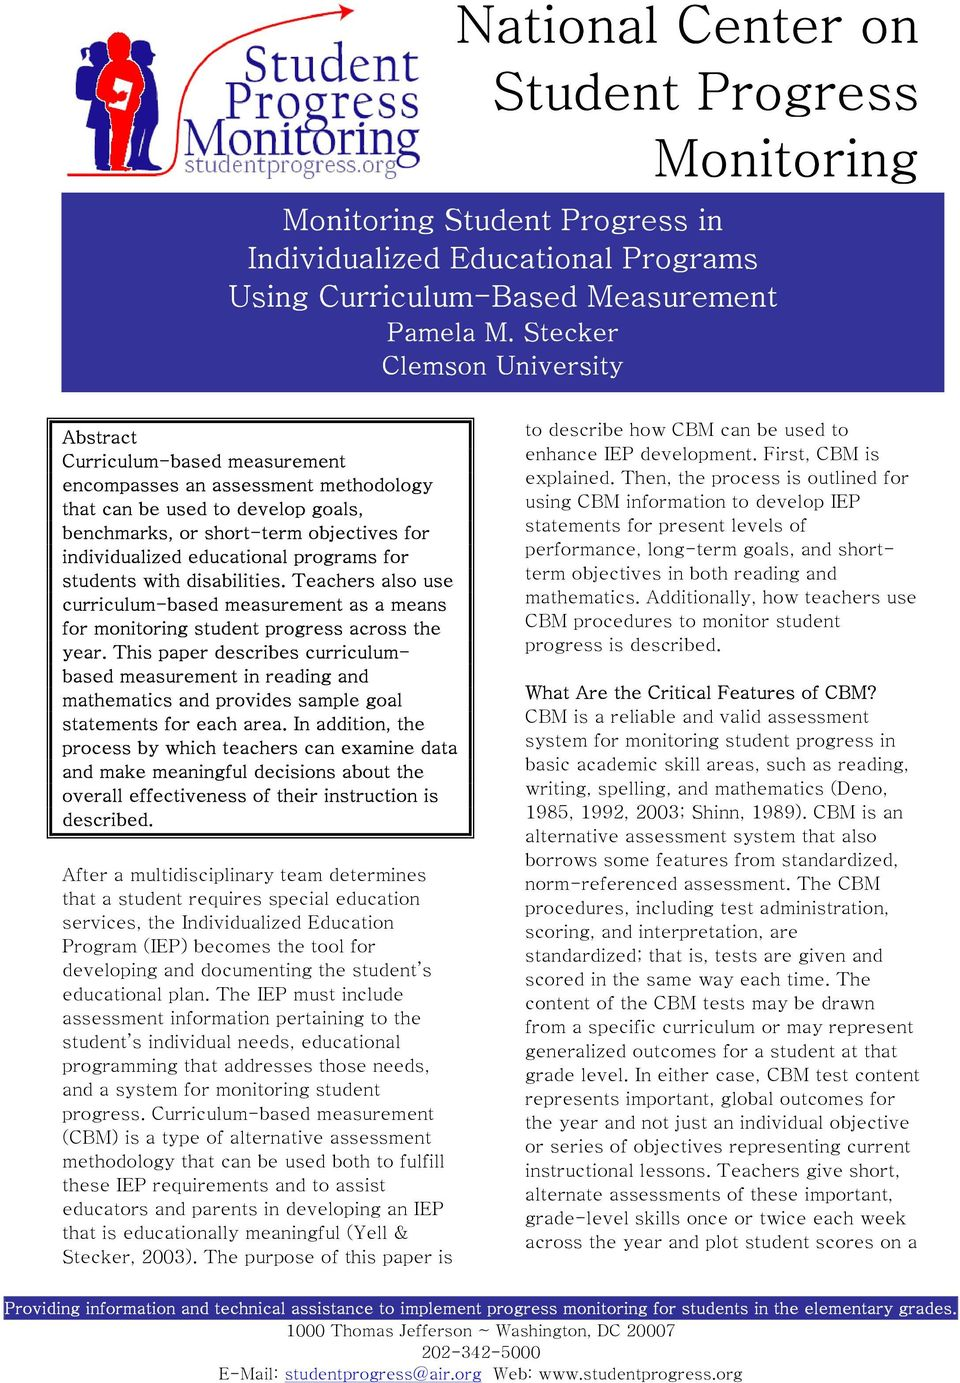 National Center On Student Progress Monitoring Pdf Free Download